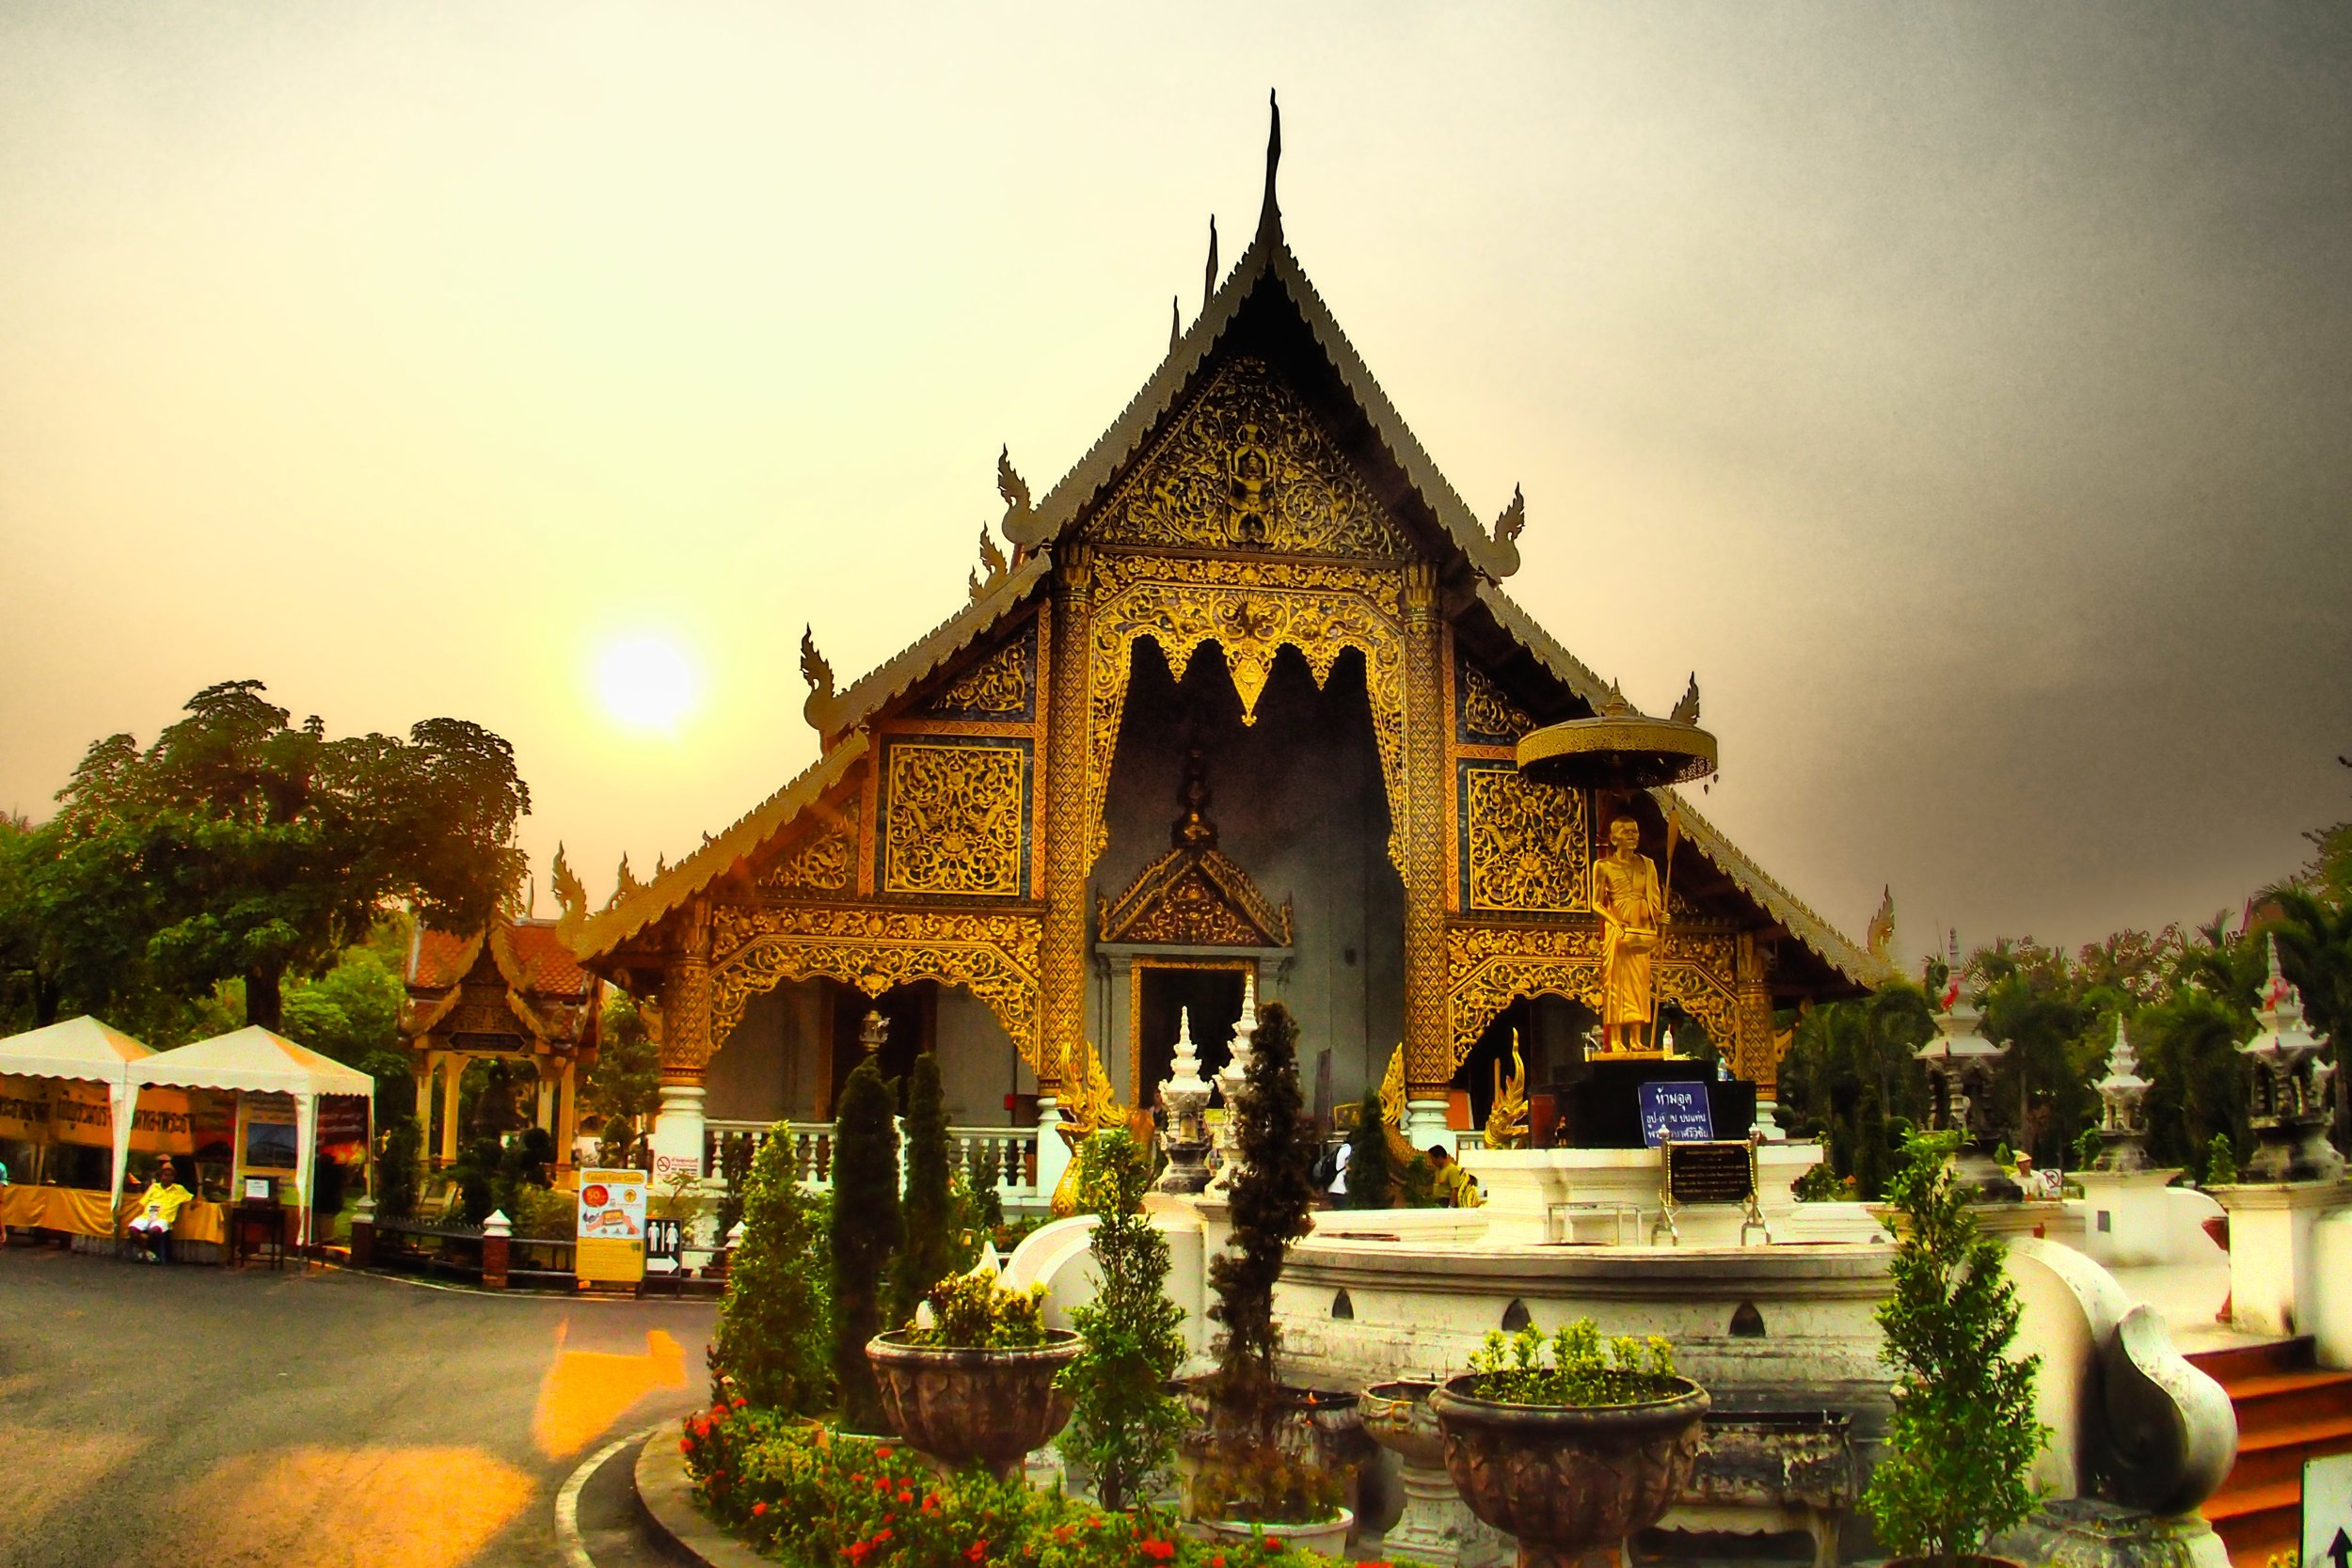 Wat Chedi Luang in Chiang Mai at Sunset.